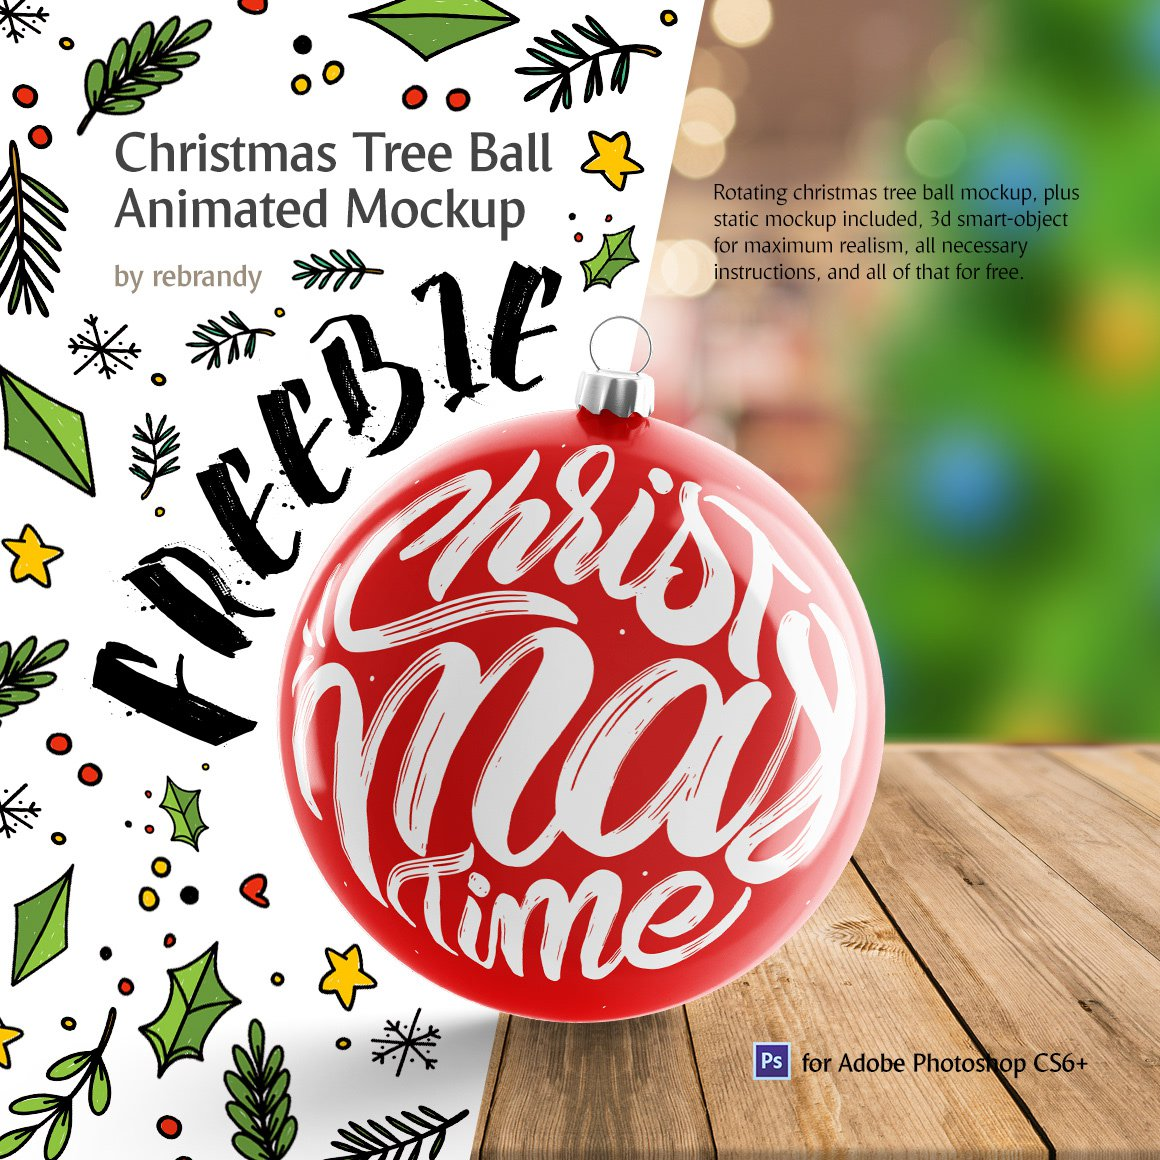 Christmas Tree Ball Animated Mockup PSD